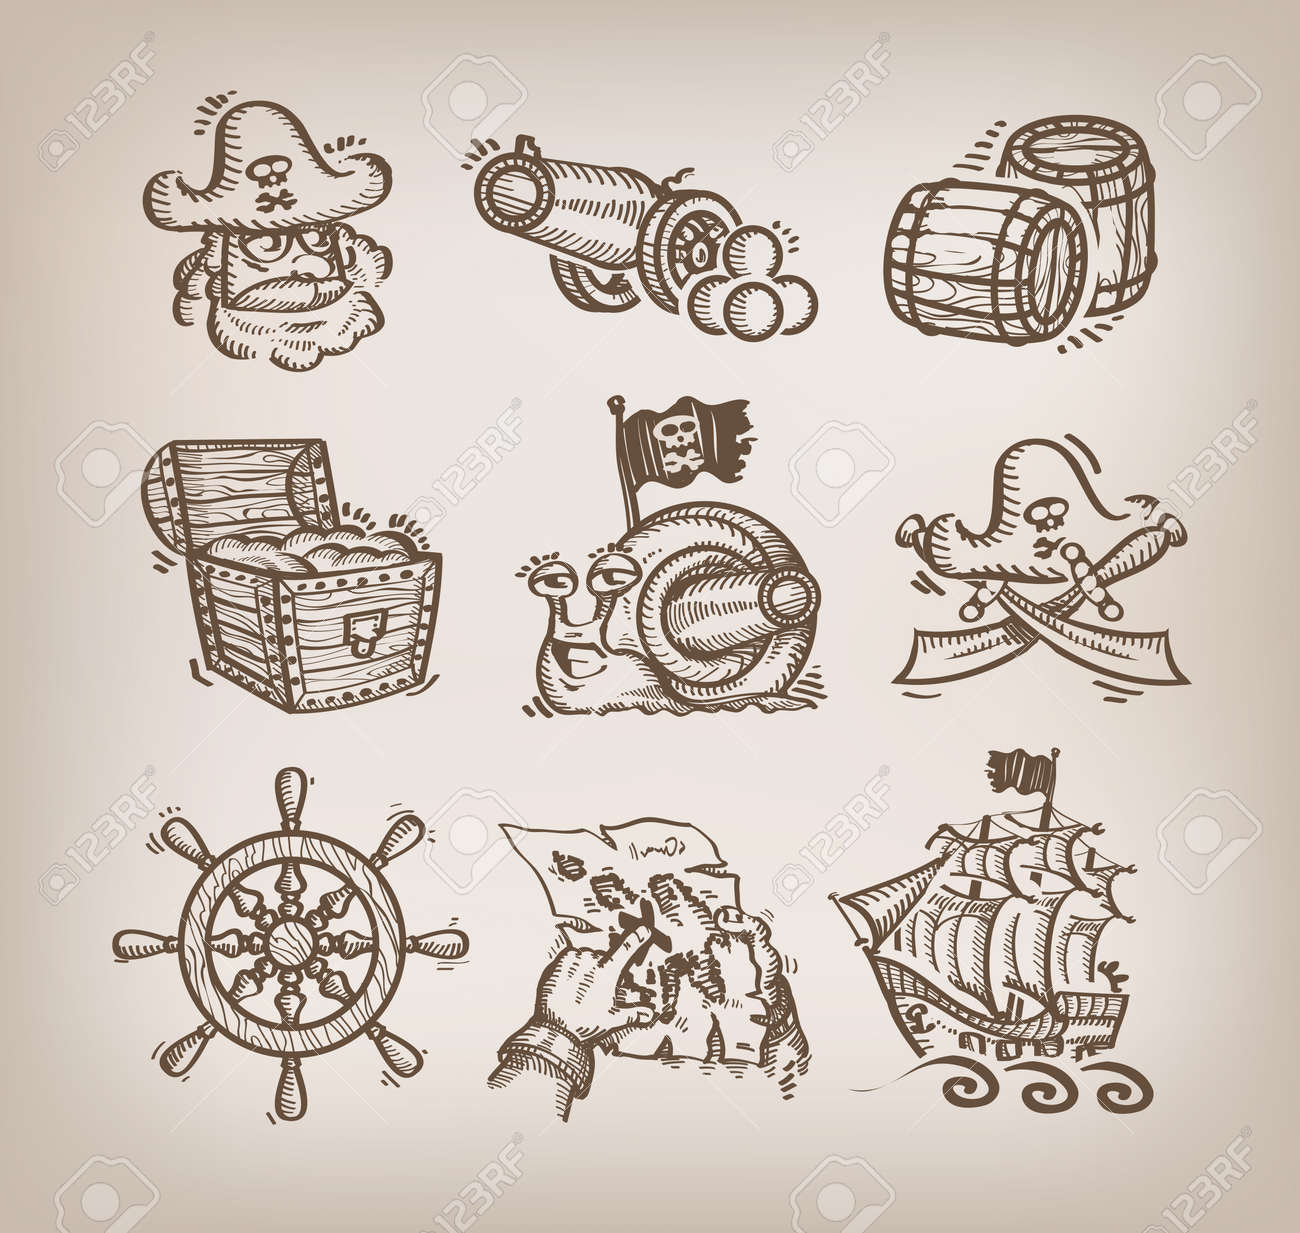 Set of icons. Author's illustration Stock Vector - 19969220